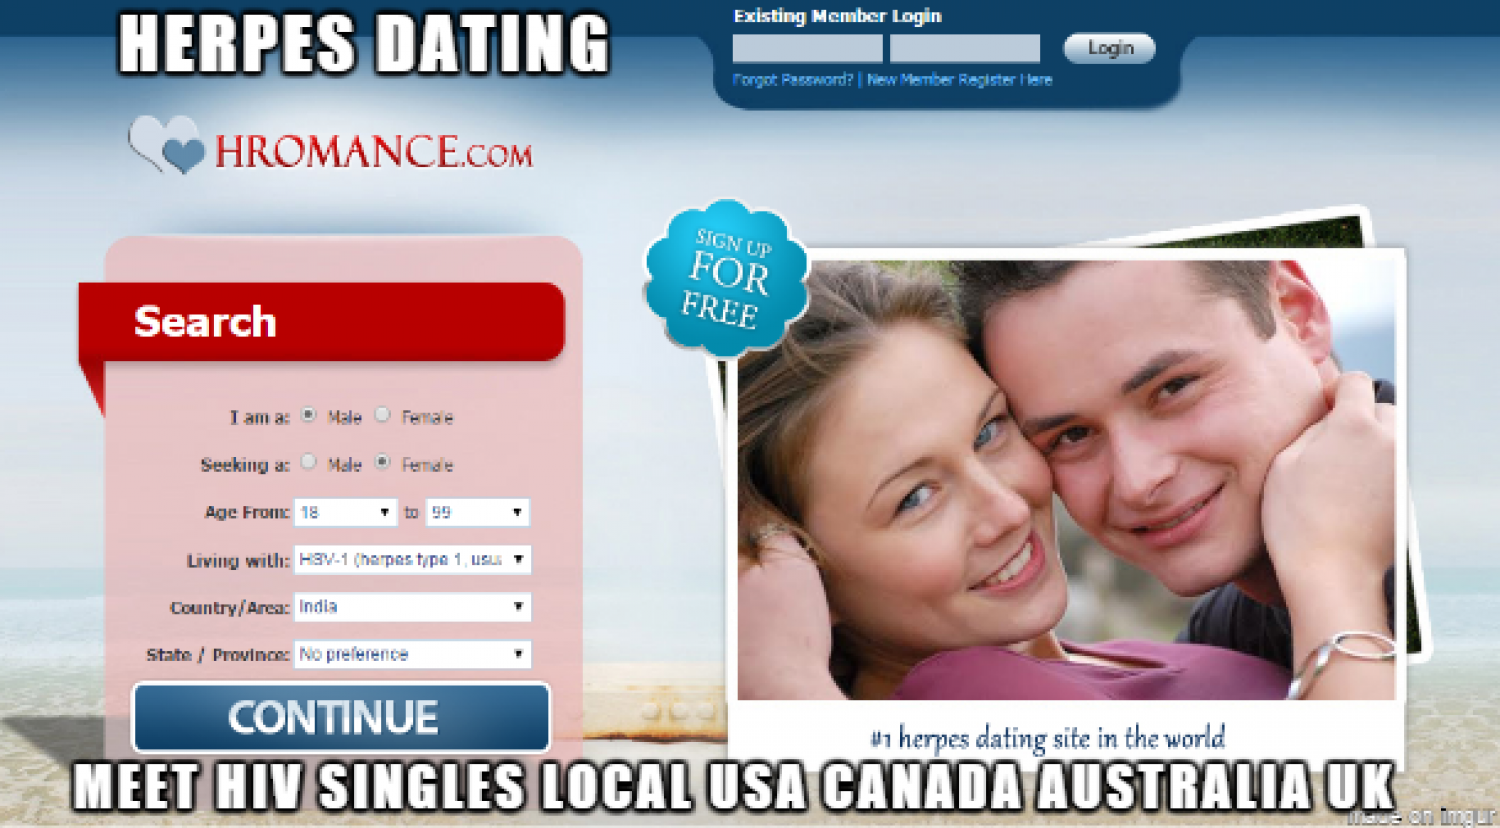 Largest dating site in canada